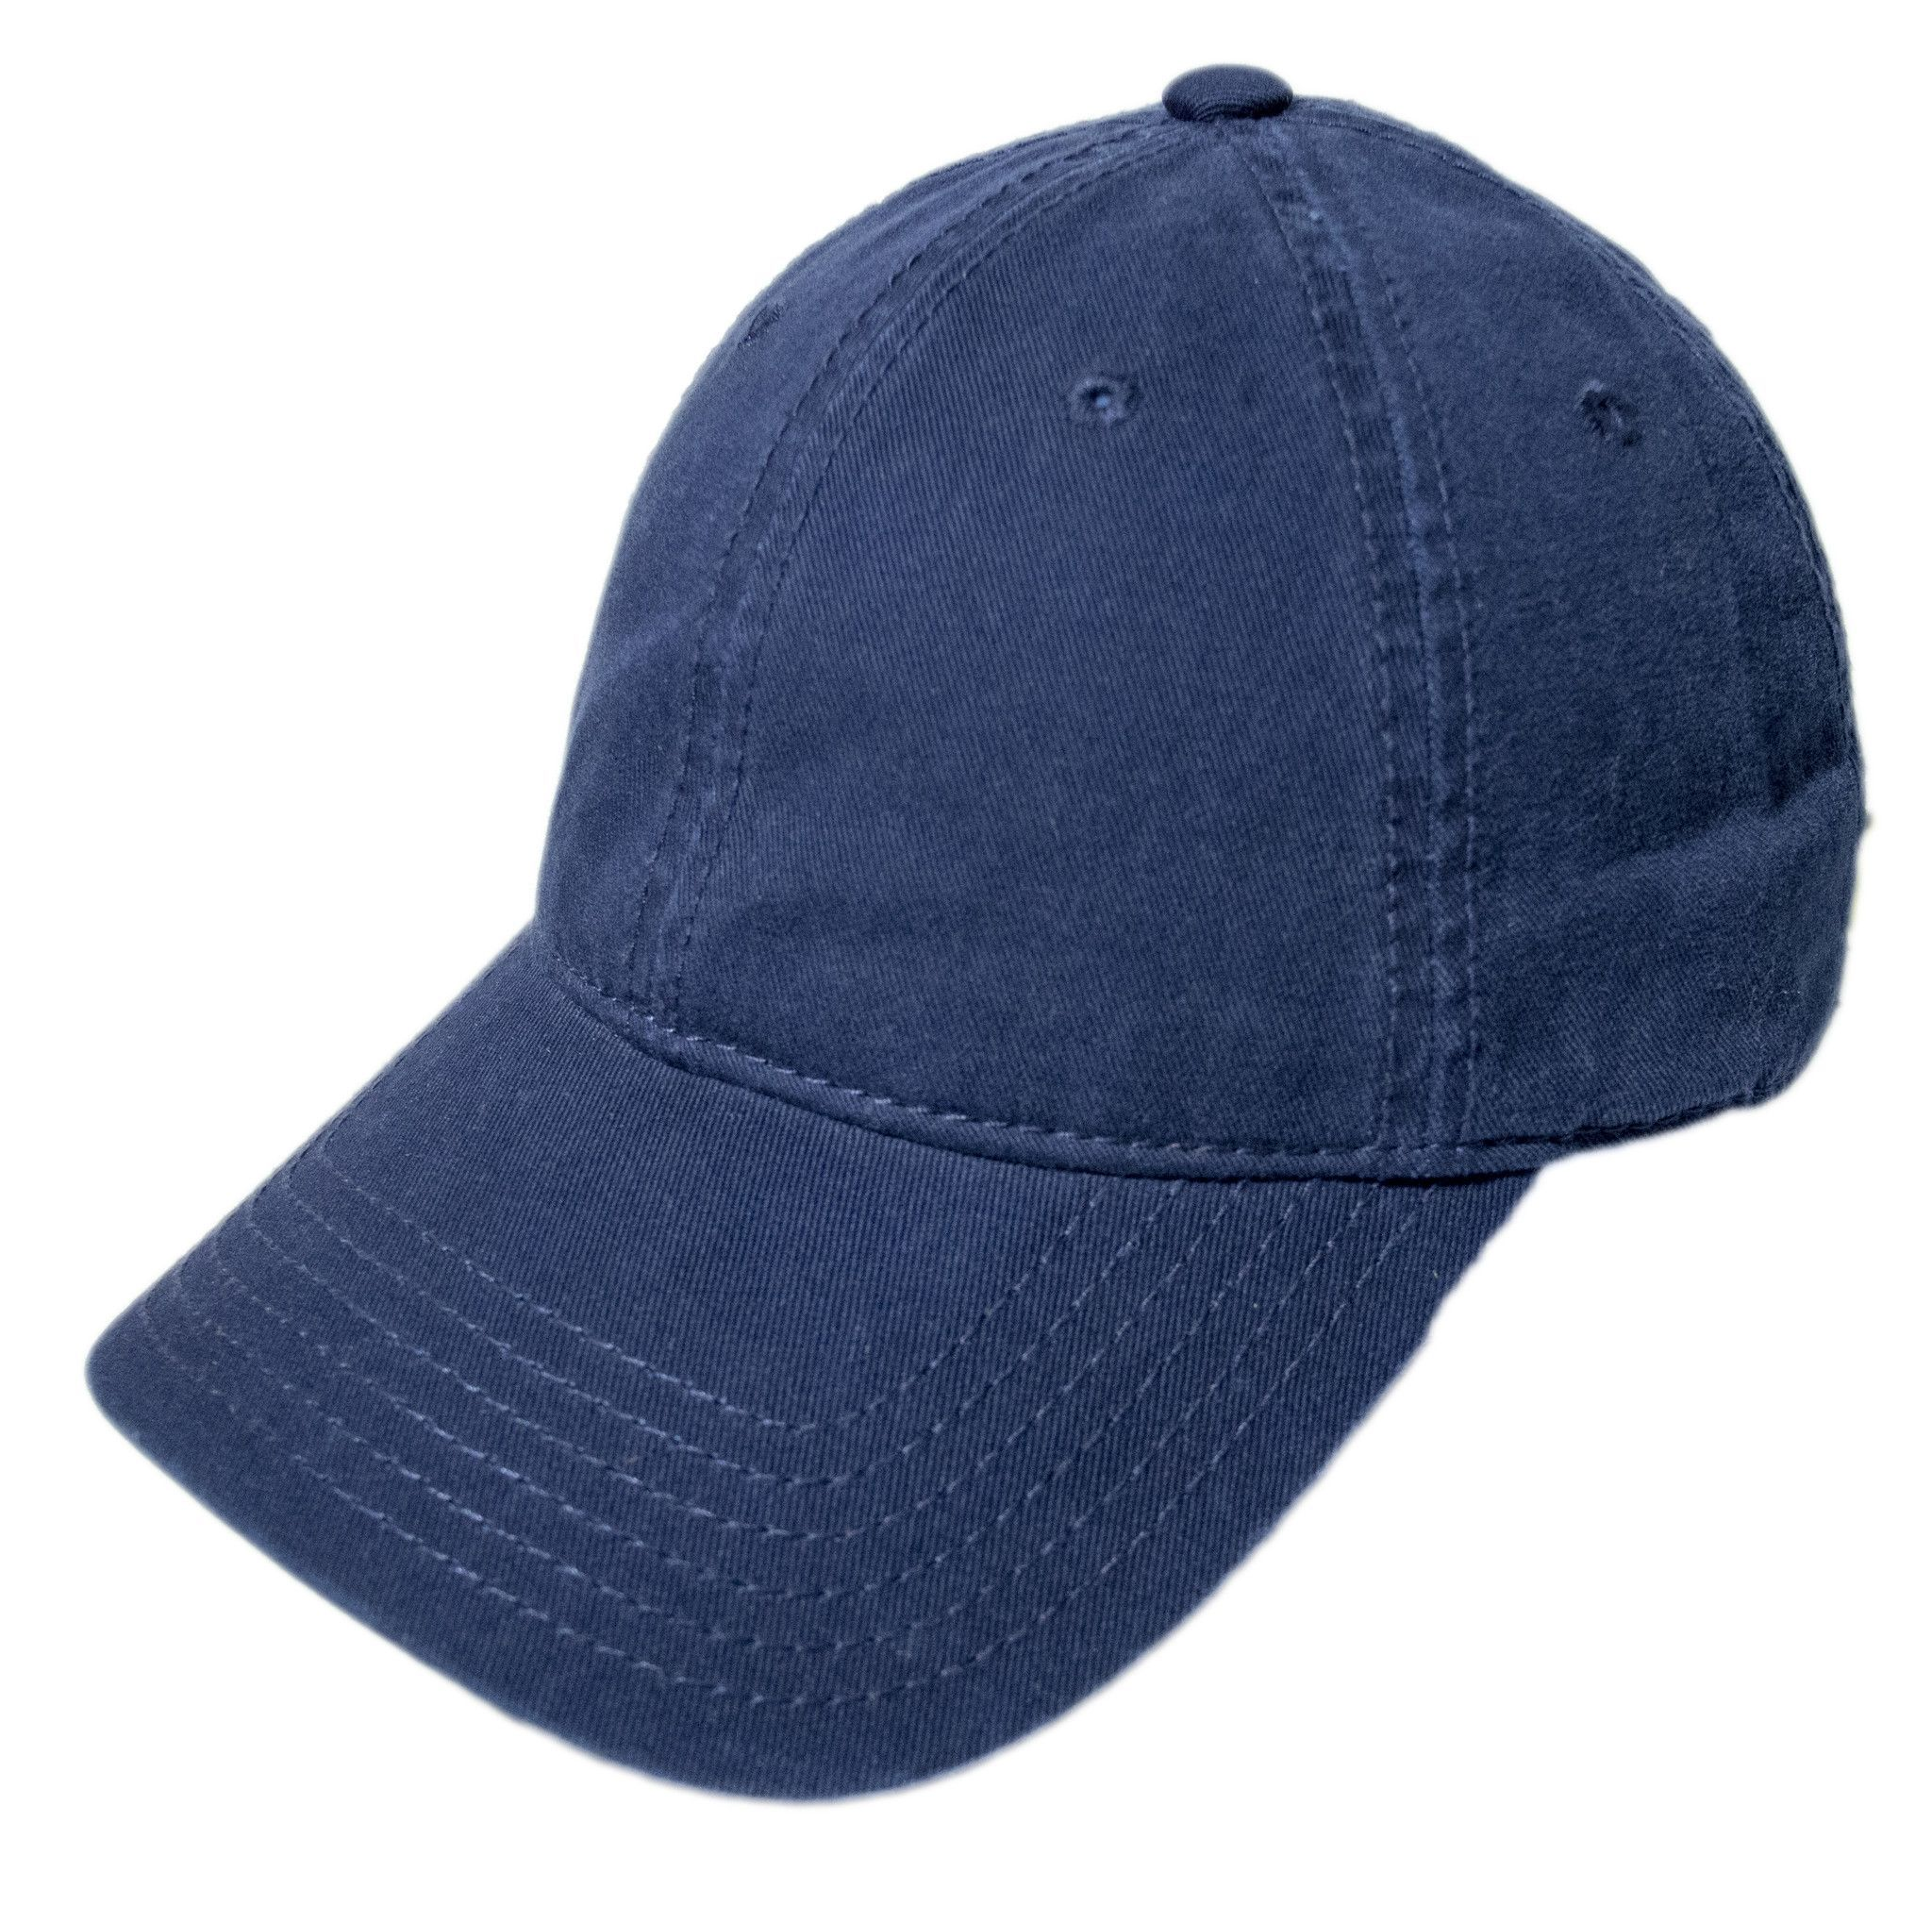 Blank Adjustable Curved Visor Strapback Hat made from 100% Heavy Washed  Cotton. One size fits most. Made with metal strap closure. (See